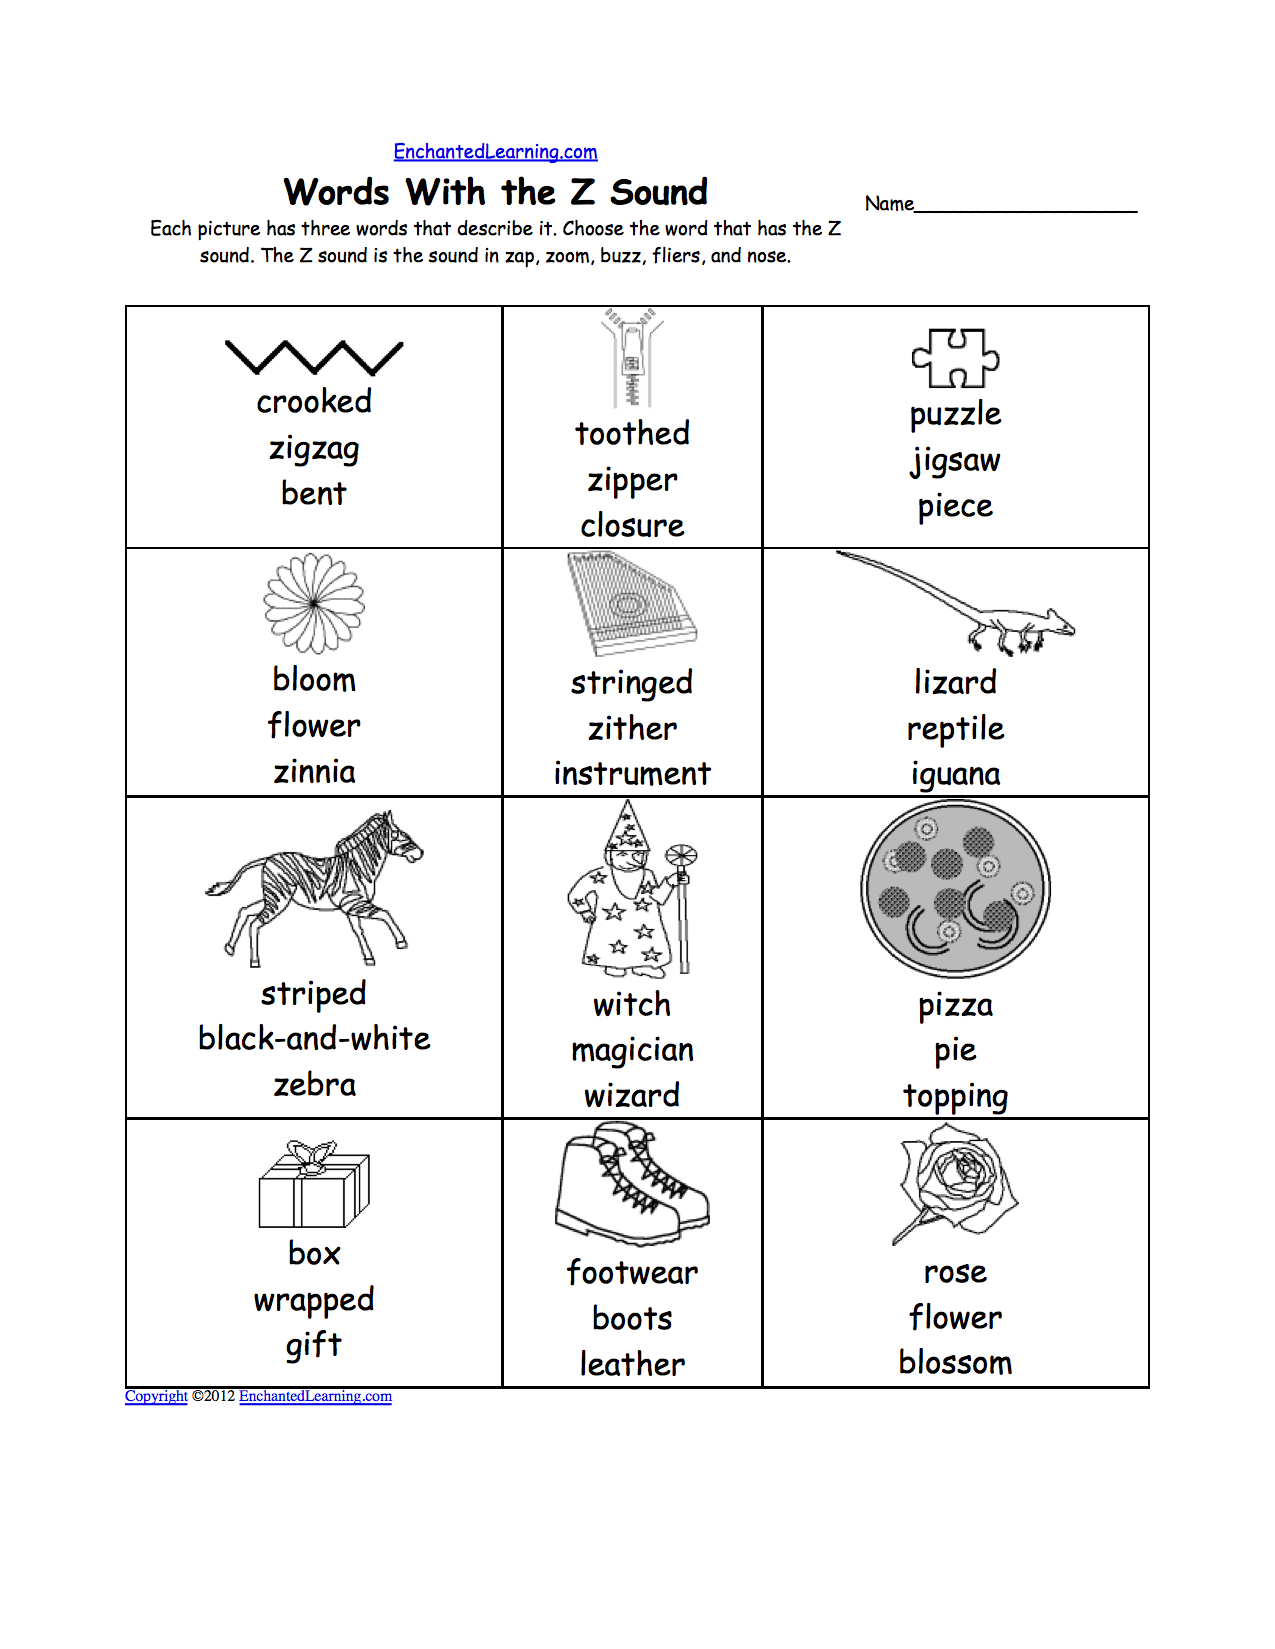 Aldiablosus  Unusual Phonics Worksheets Multiple Choice Worksheets To Print  With Goodlooking Phonics Worksheets Multiple Choice Worksheets To Print  Enchantedlearningcom With Lovely Nelson Comprehension Worksheets Also Where Wear Were We Re Worksheet In Addition Free Worksheets Middle School And Paraphrase Worksheet As Well As Text Feature Worksheets Additionally Summarizing Short Stories Worksheets From Enchantedlearningcom With Aldiablosus  Goodlooking Phonics Worksheets Multiple Choice Worksheets To Print  With Lovely Phonics Worksheets Multiple Choice Worksheets To Print  Enchantedlearningcom And Unusual Nelson Comprehension Worksheets Also Where Wear Were We Re Worksheet In Addition Free Worksheets Middle School From Enchantedlearningcom